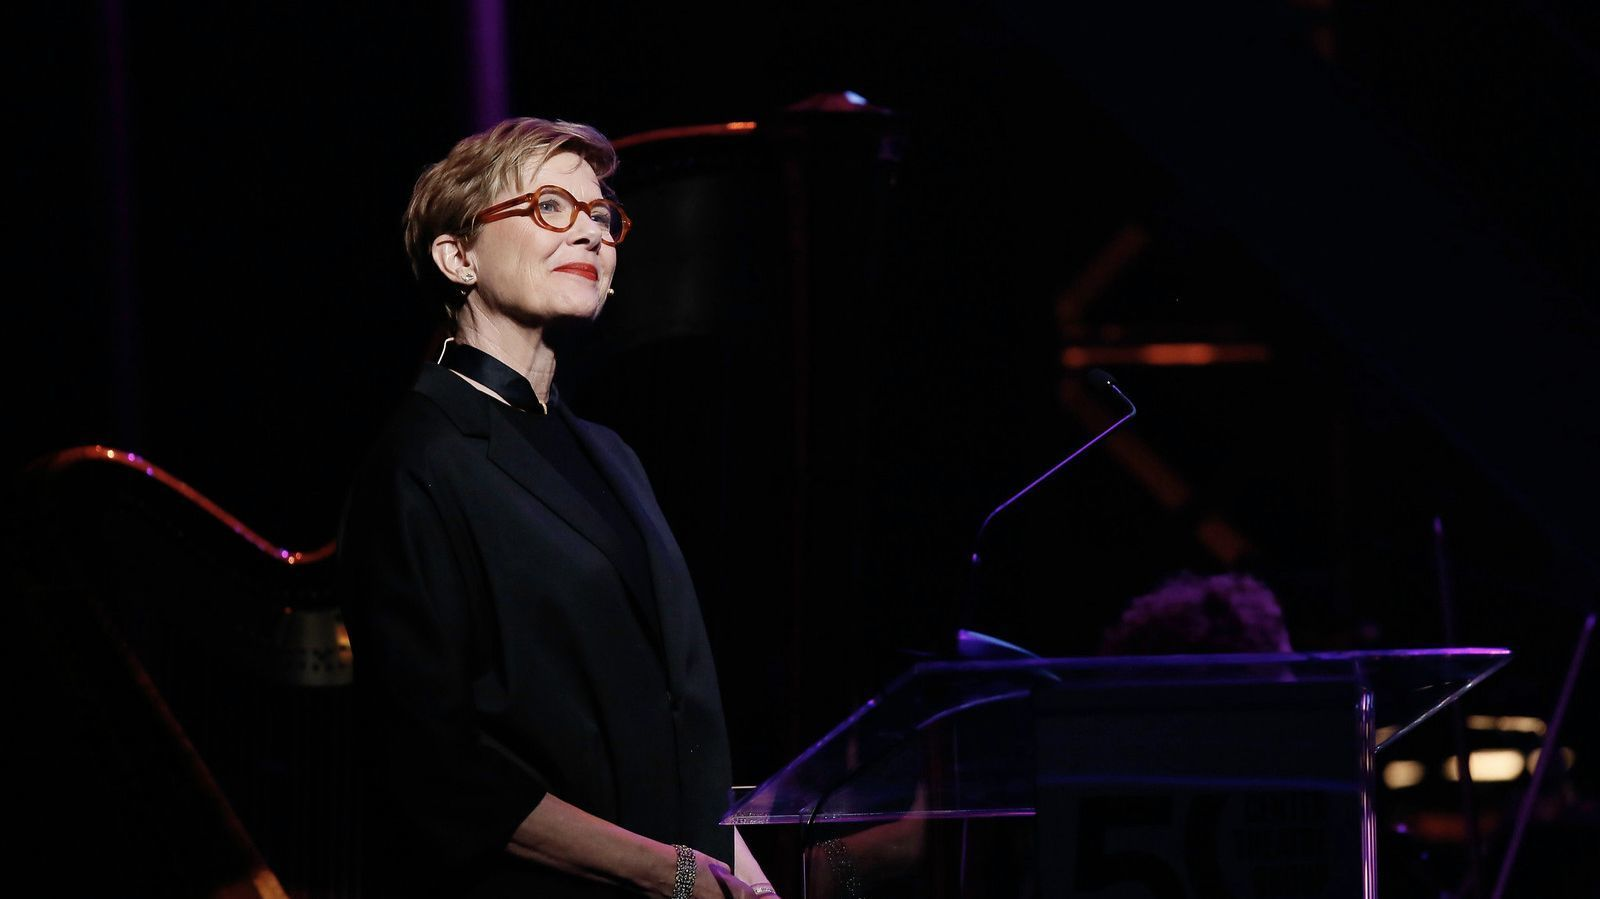 Annette Bening performs during Center Theatre Group's 50th anniversary fete at the Ahmanson.